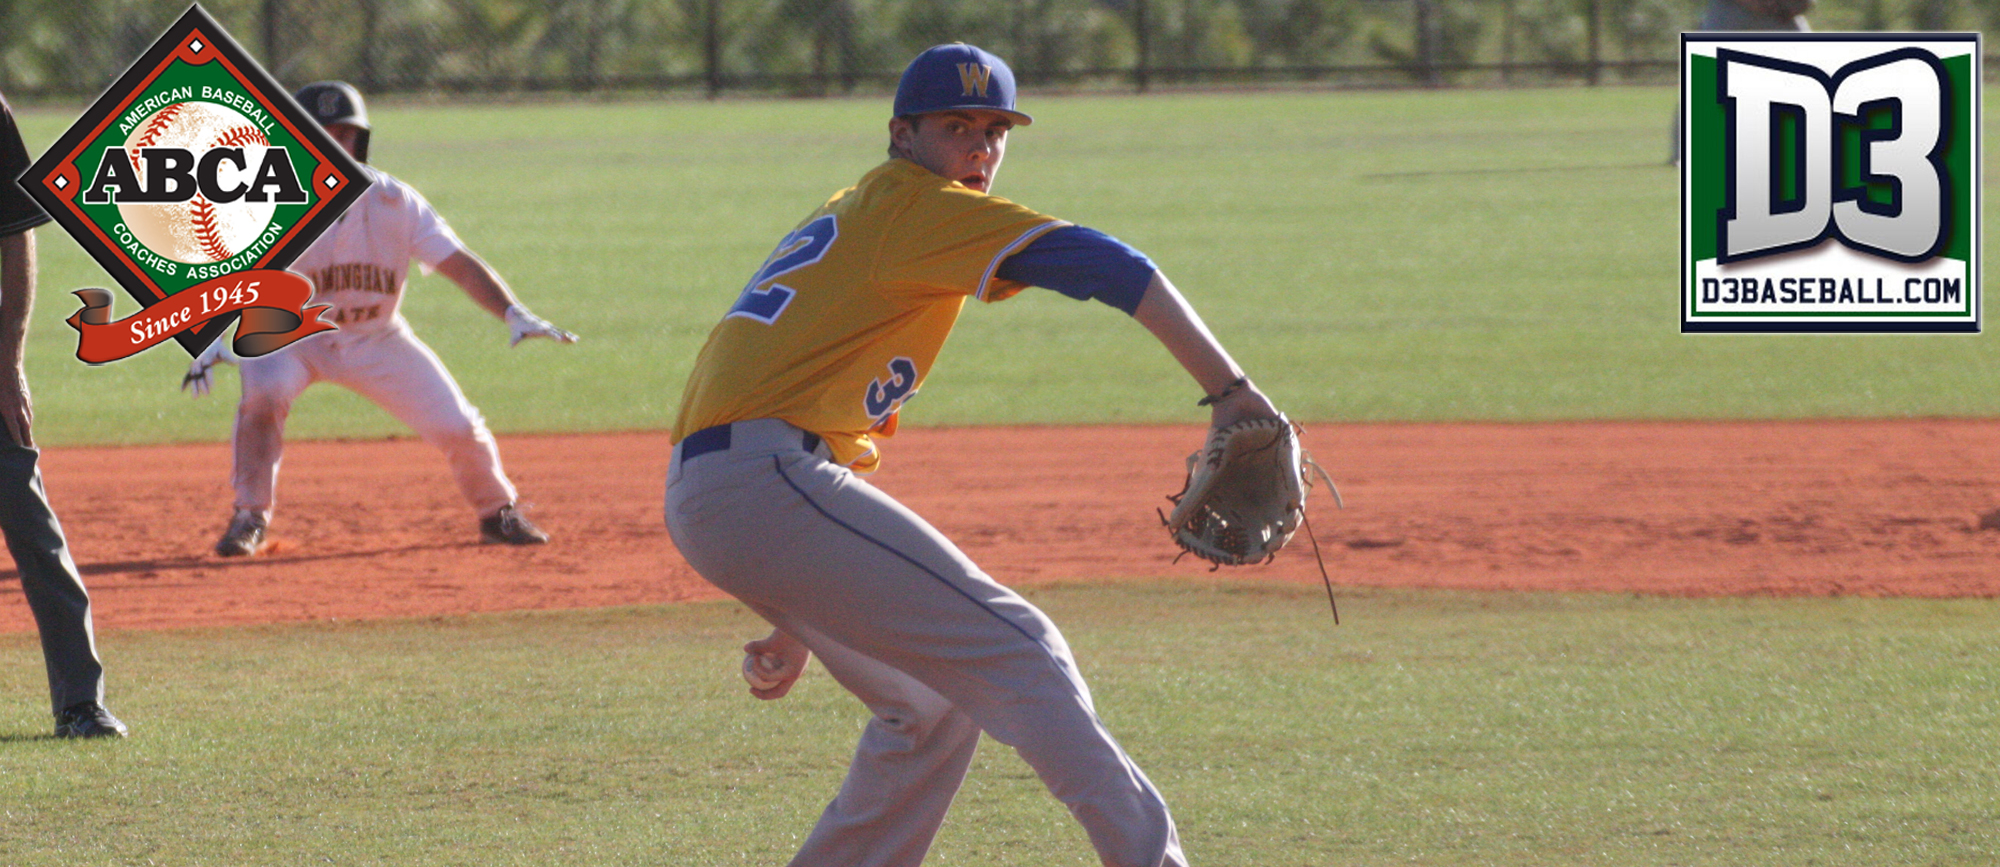 Bob Hamel Earns Third Team All-Region Honors from D3baseball.com & ABCA/Rawlings